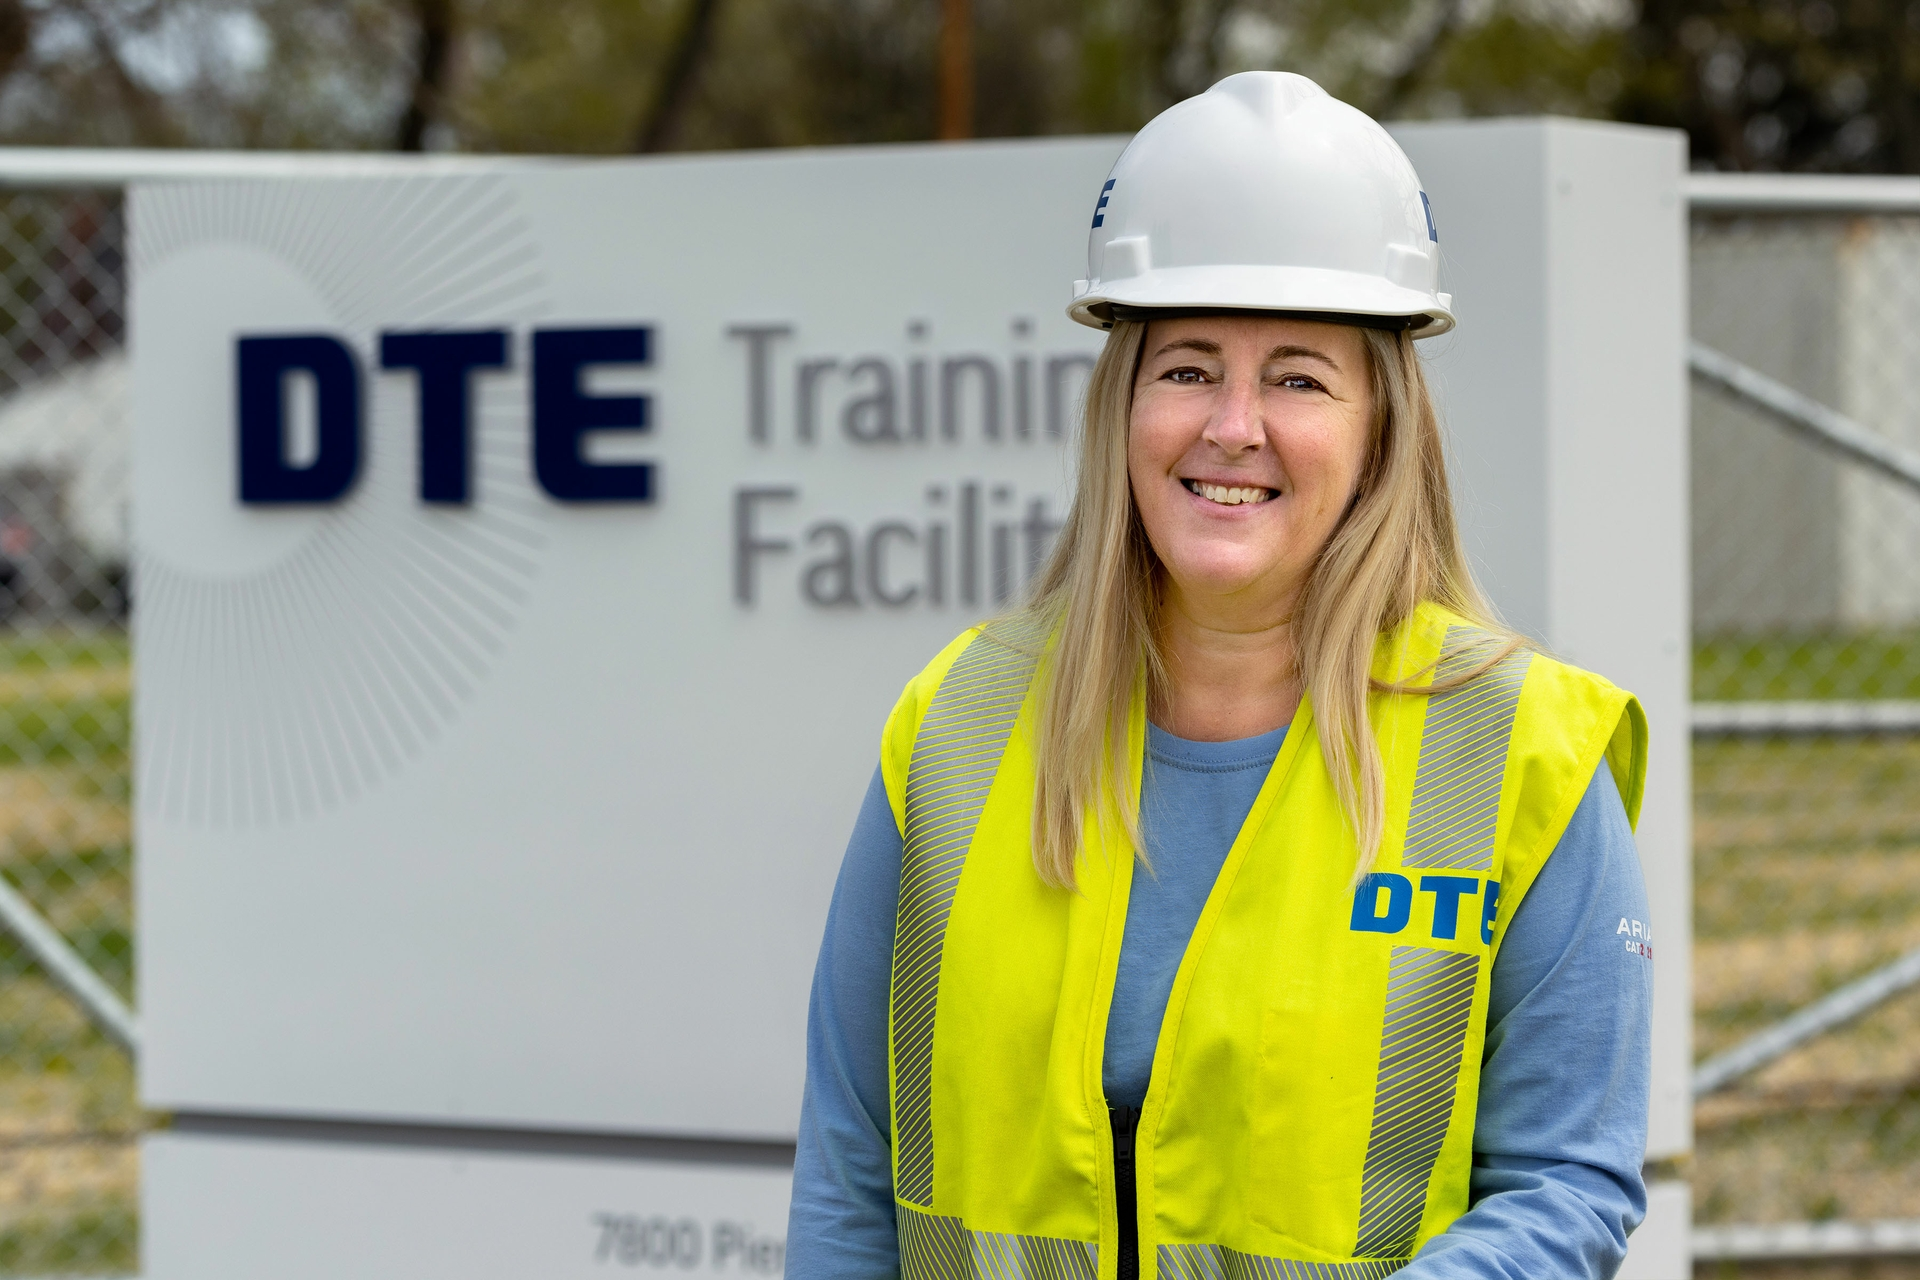 Heather Rivard, former senior vice president of Electric Distribution, had a 28-year career at DTE.